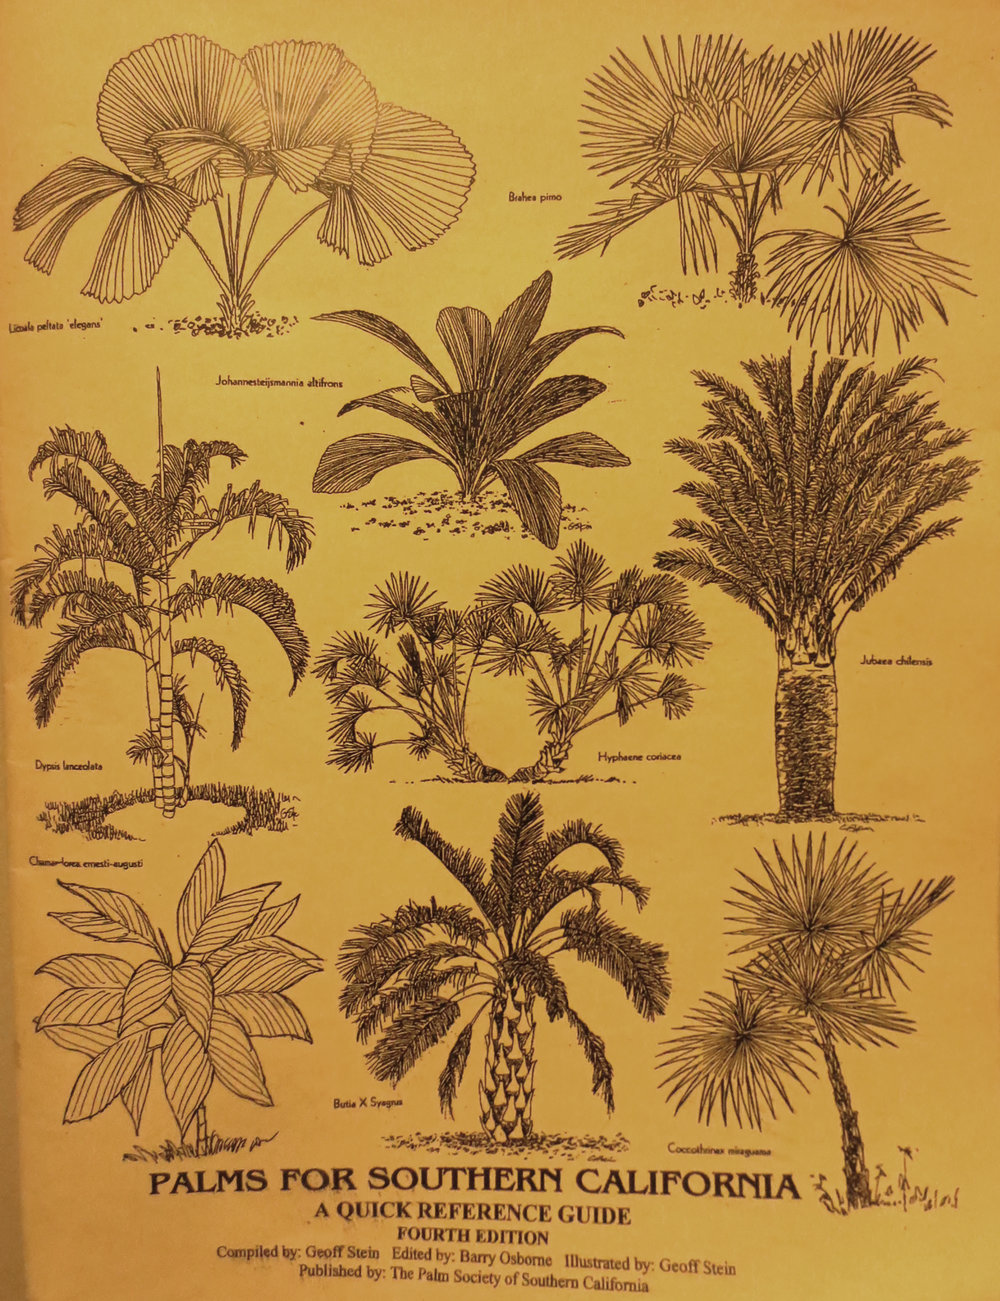 Palms for Southern California - Truly an essential tool for the beginner palm enthusiast!